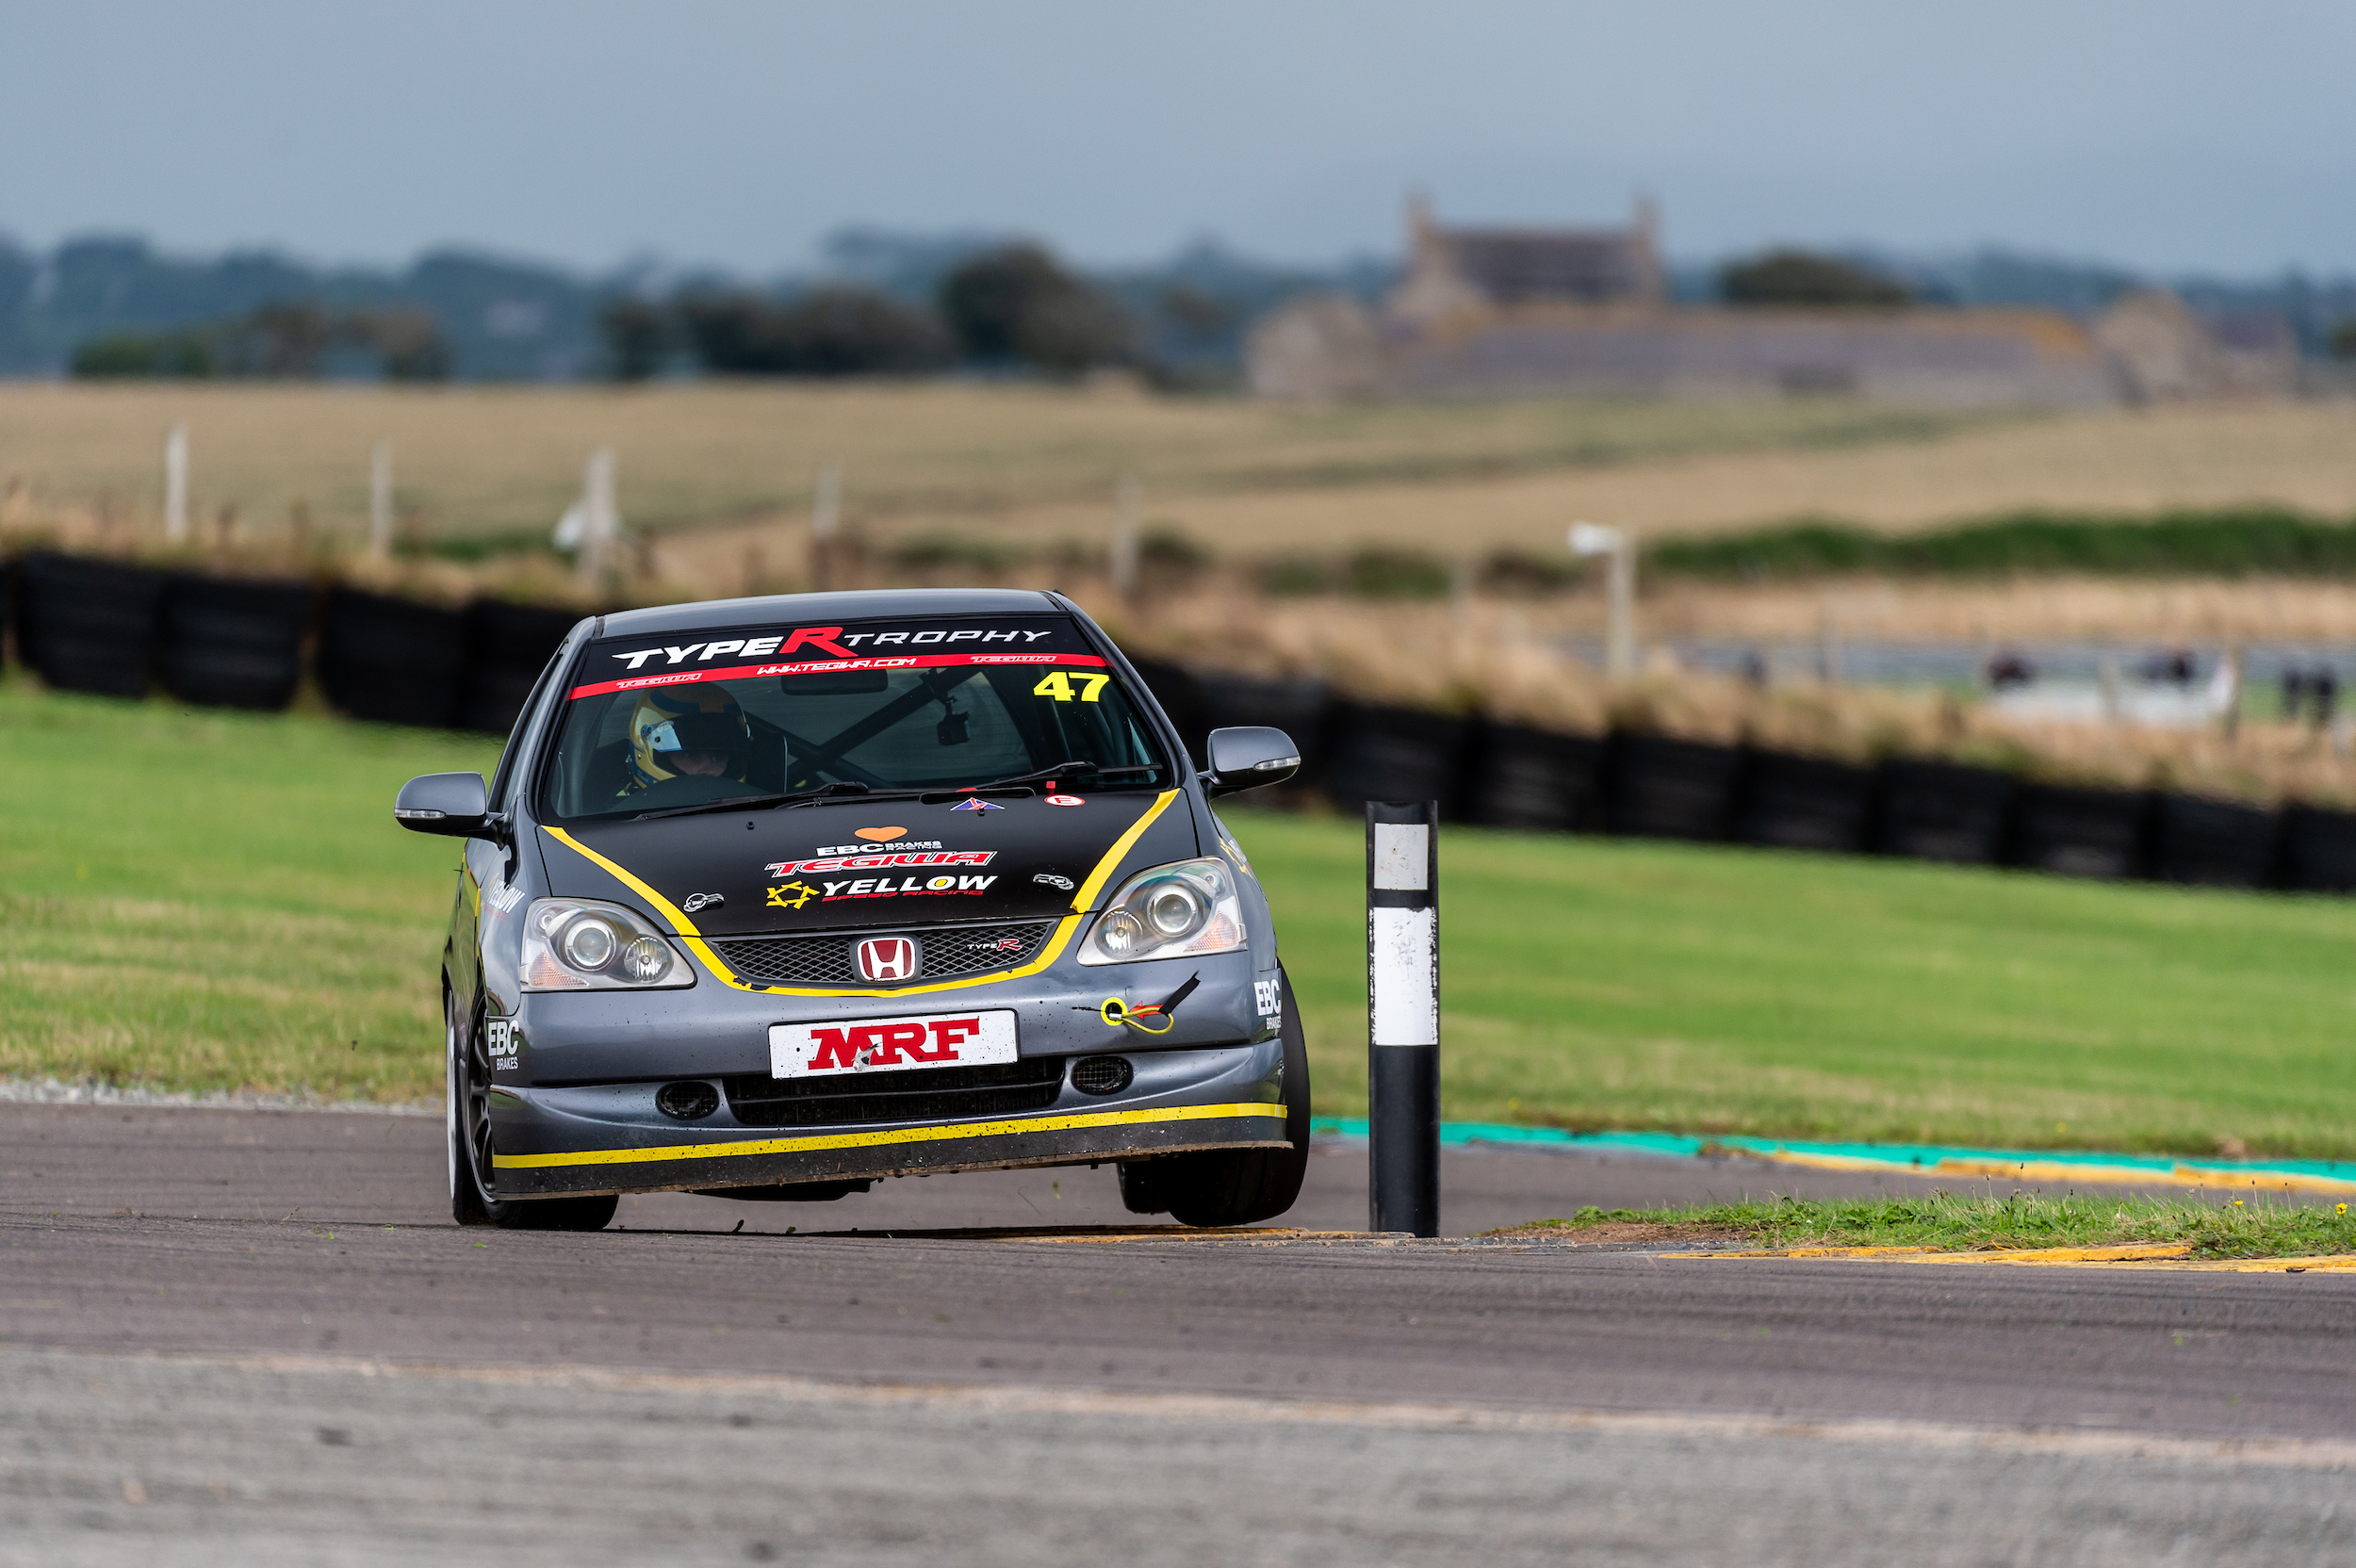 RP-X-Equipped Luke Rosewell Achieves First Outright Win in Type R Trophy